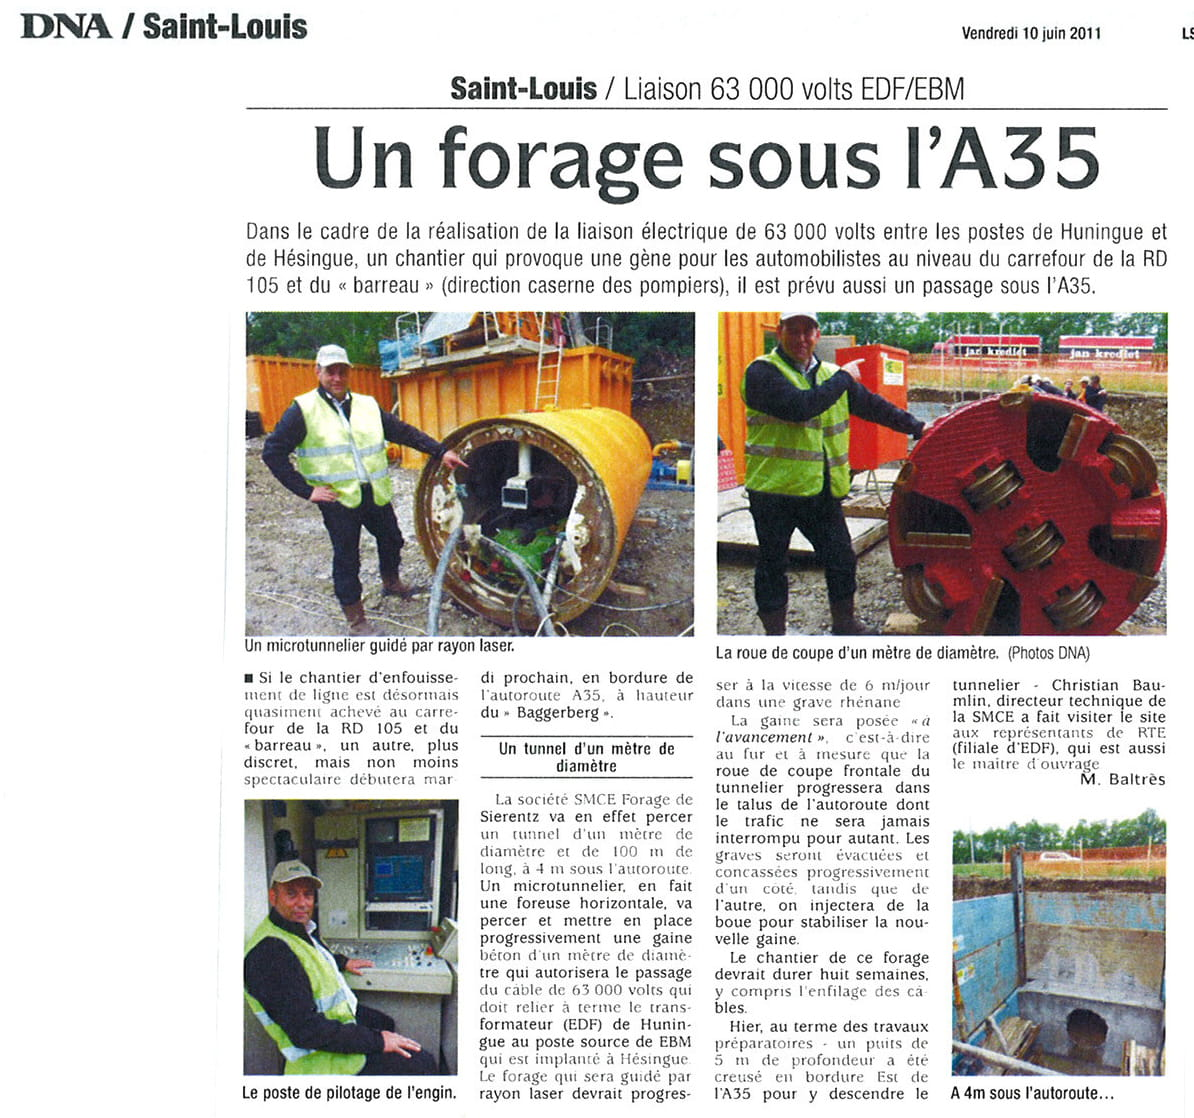 2011-06-A35-microtunnelier-smce-forage-tunnel-microtunnelier-foncage-battage